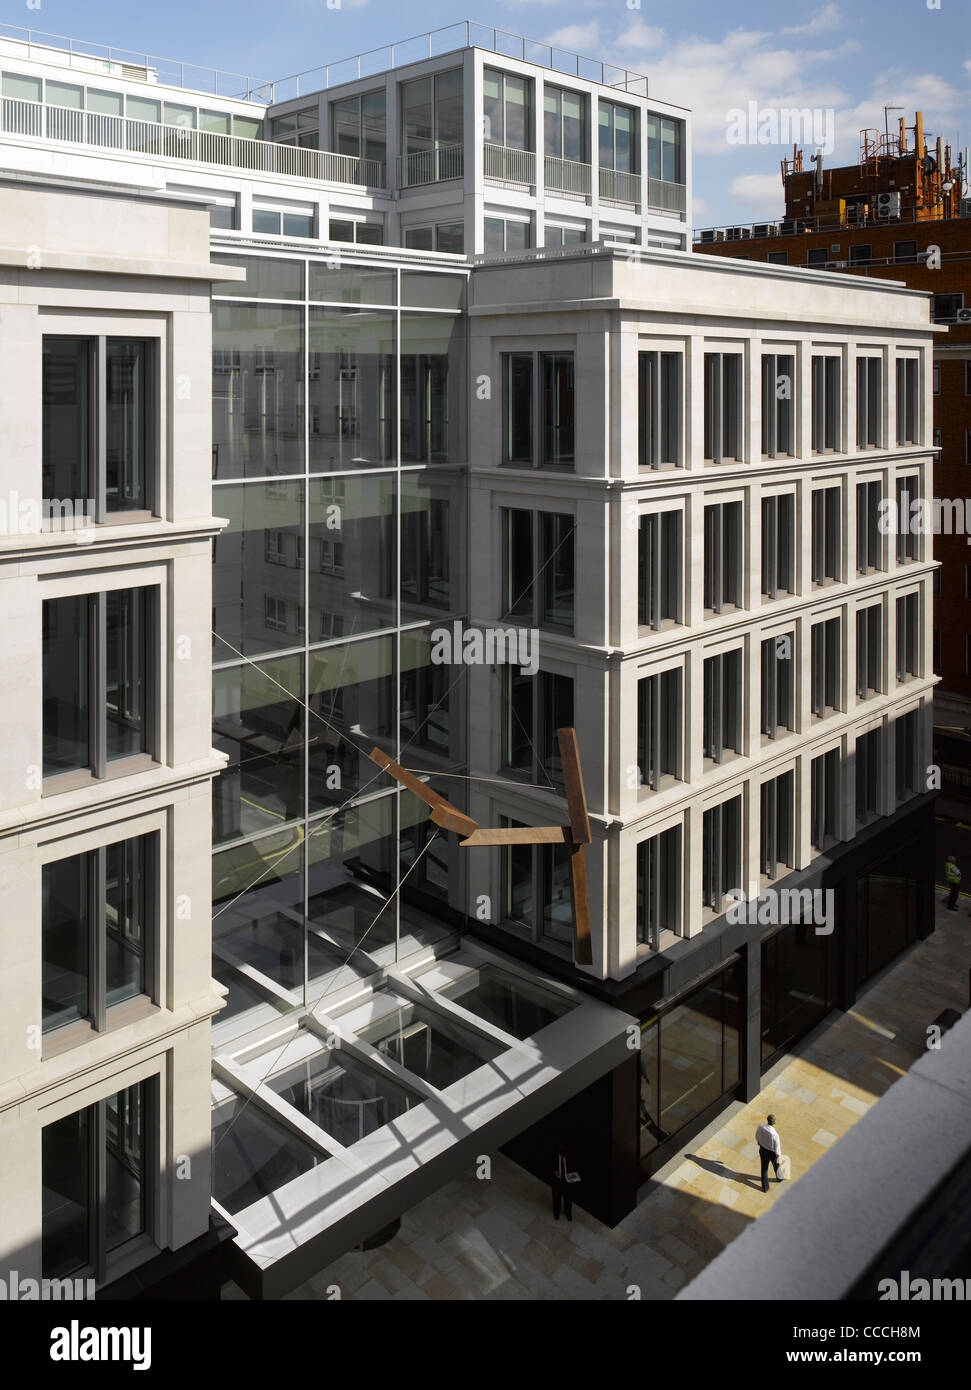 New Mixed Use Building That Contributes To The Revitalised Commercial And Public Life Of The Street. Careful Consideration - Stock Image